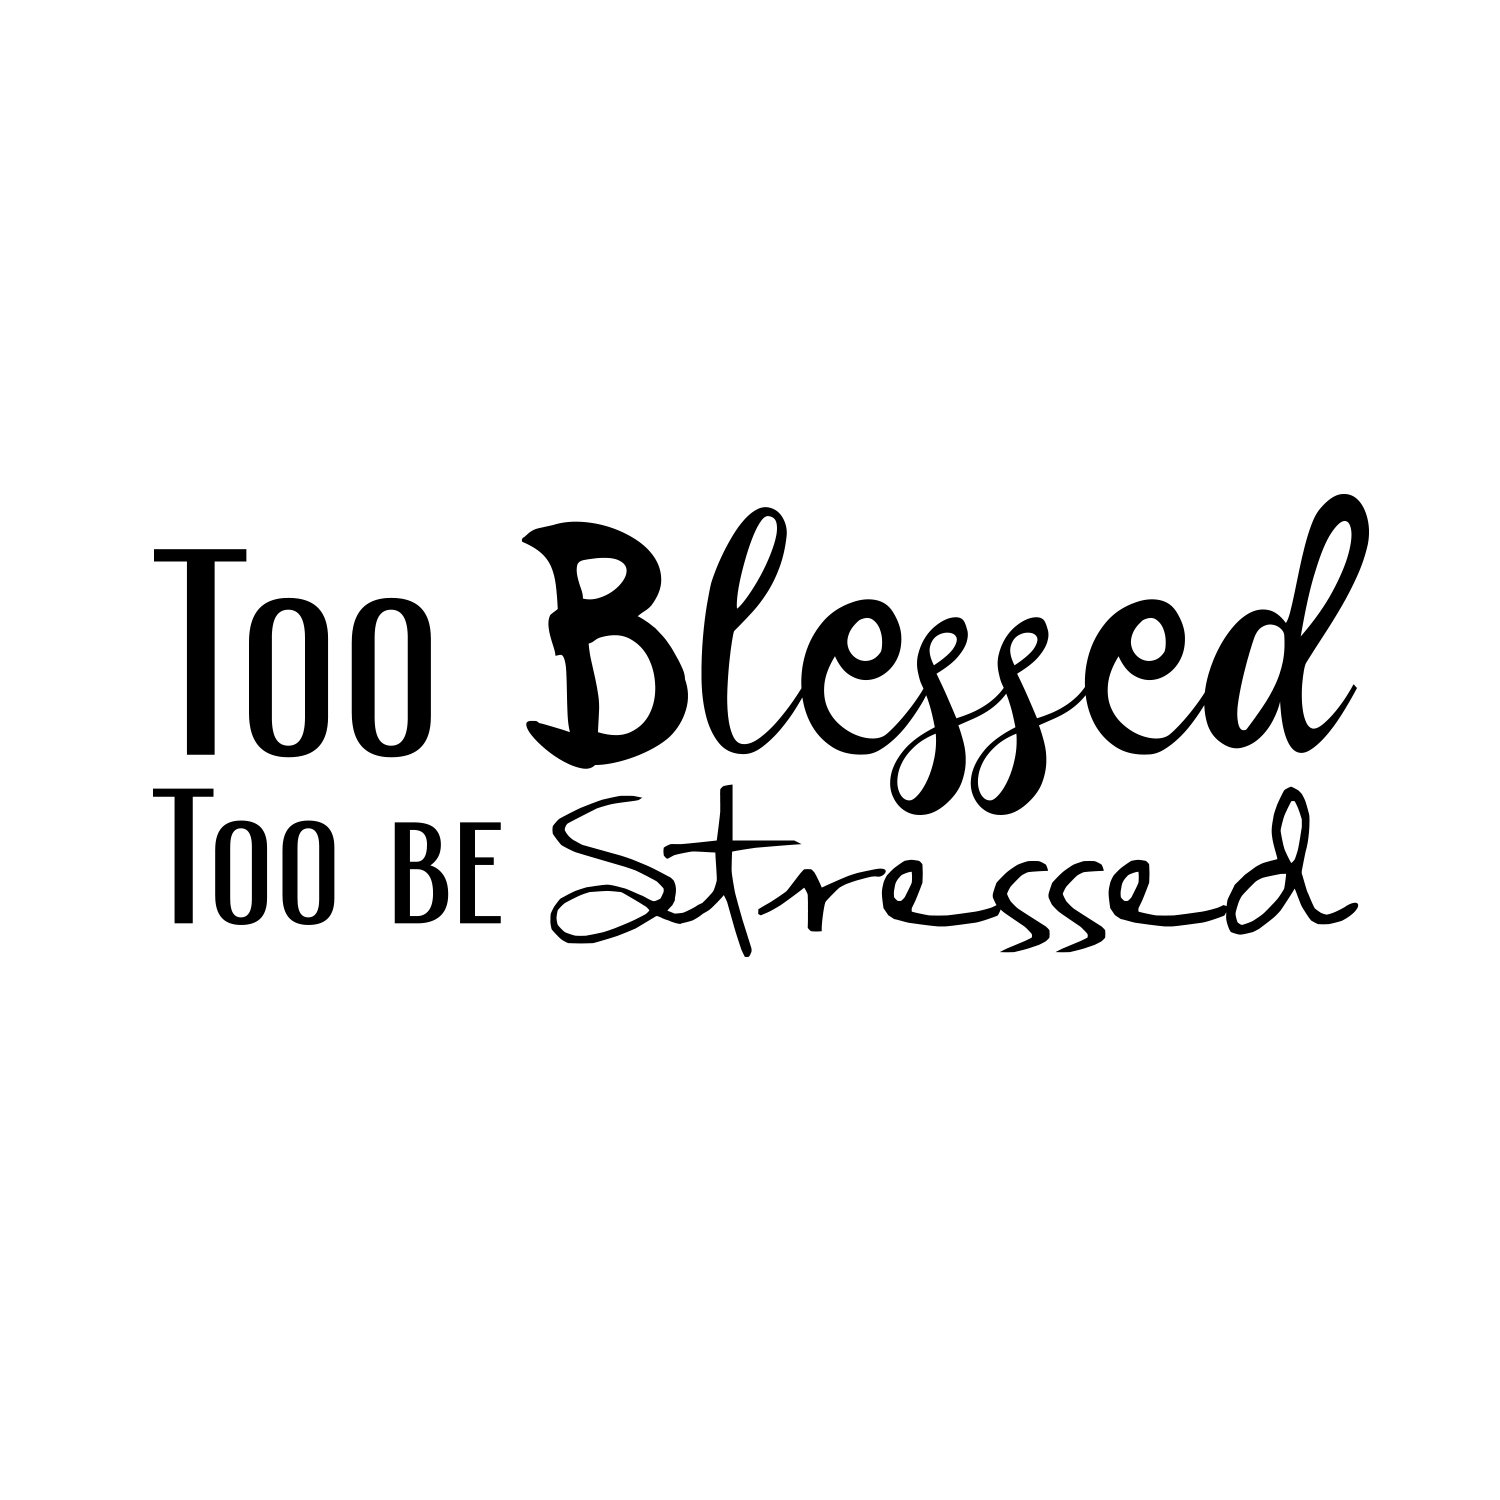 Vinyl Wall Art Decal - Too Blessed to Be Stressed - 23'' x 18'' - Home Decor Bedroom Living Room Office Work Insirational Motivational Sayings - Removable Sticker Decals Cursive Lettering by Pulse Vinyl